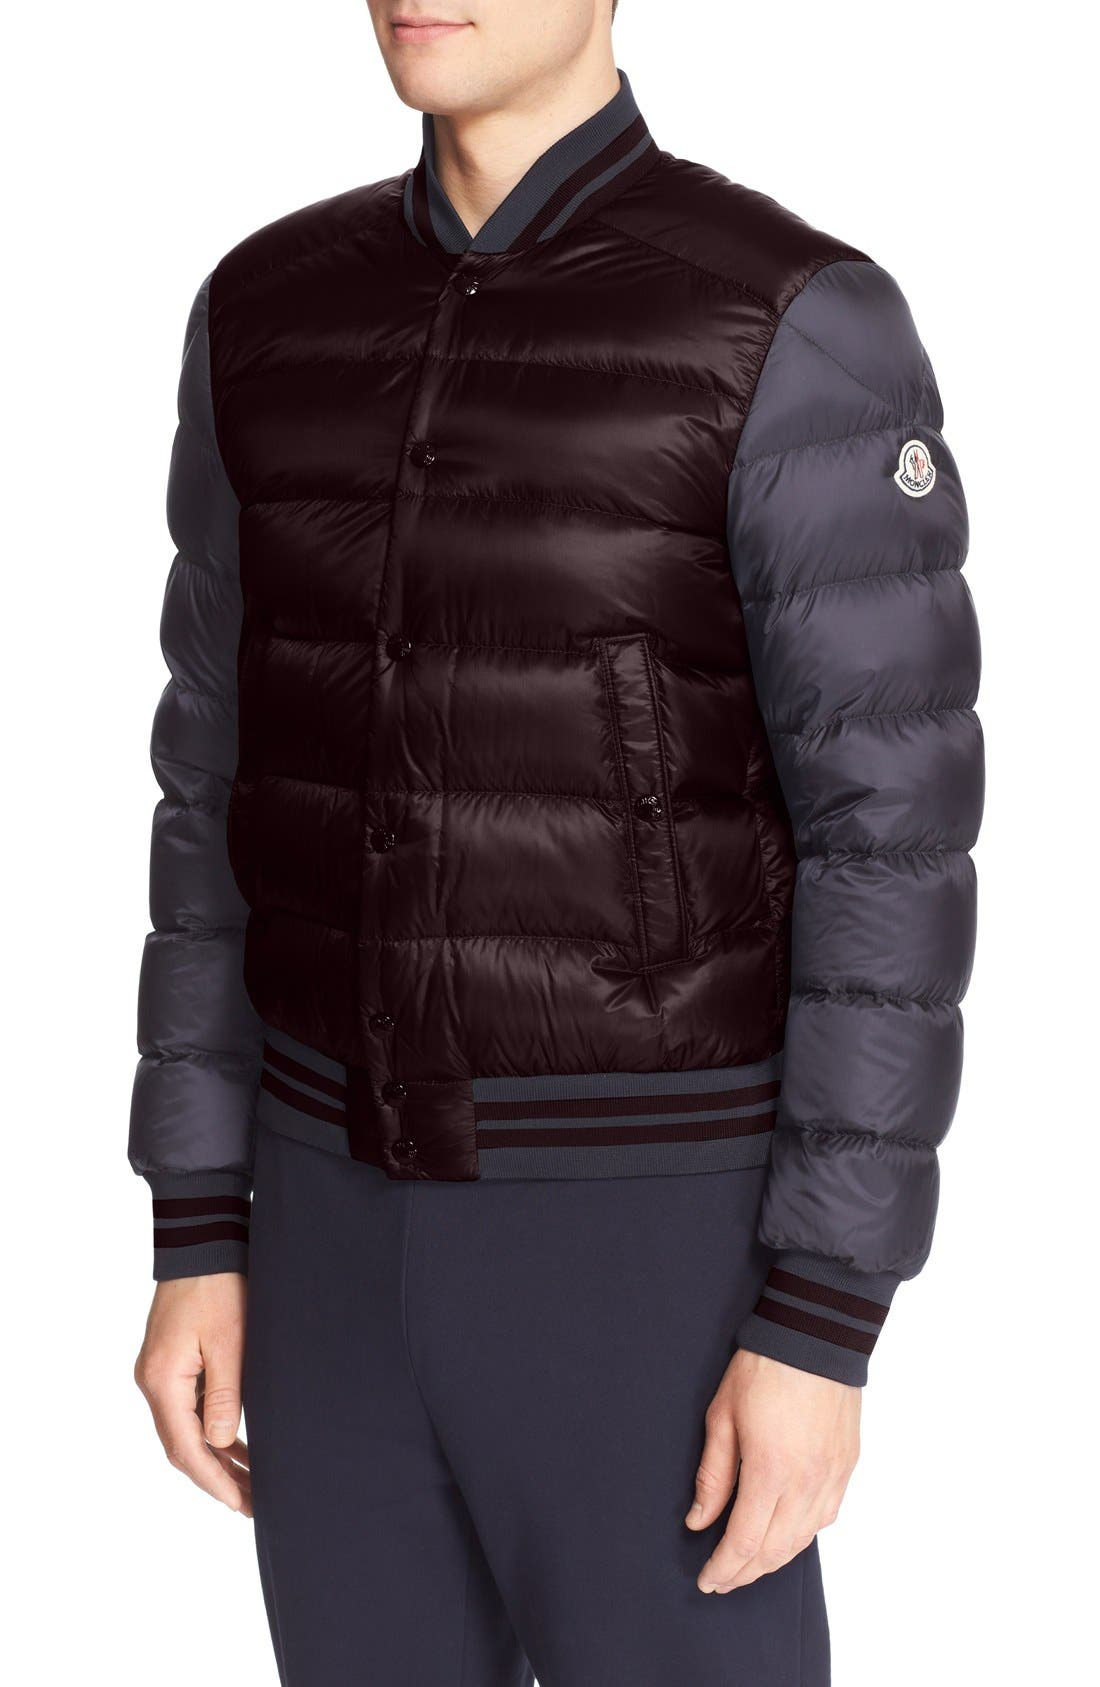 MONCLER 'Bardford' Channel Quilted Down Baseball Jacket